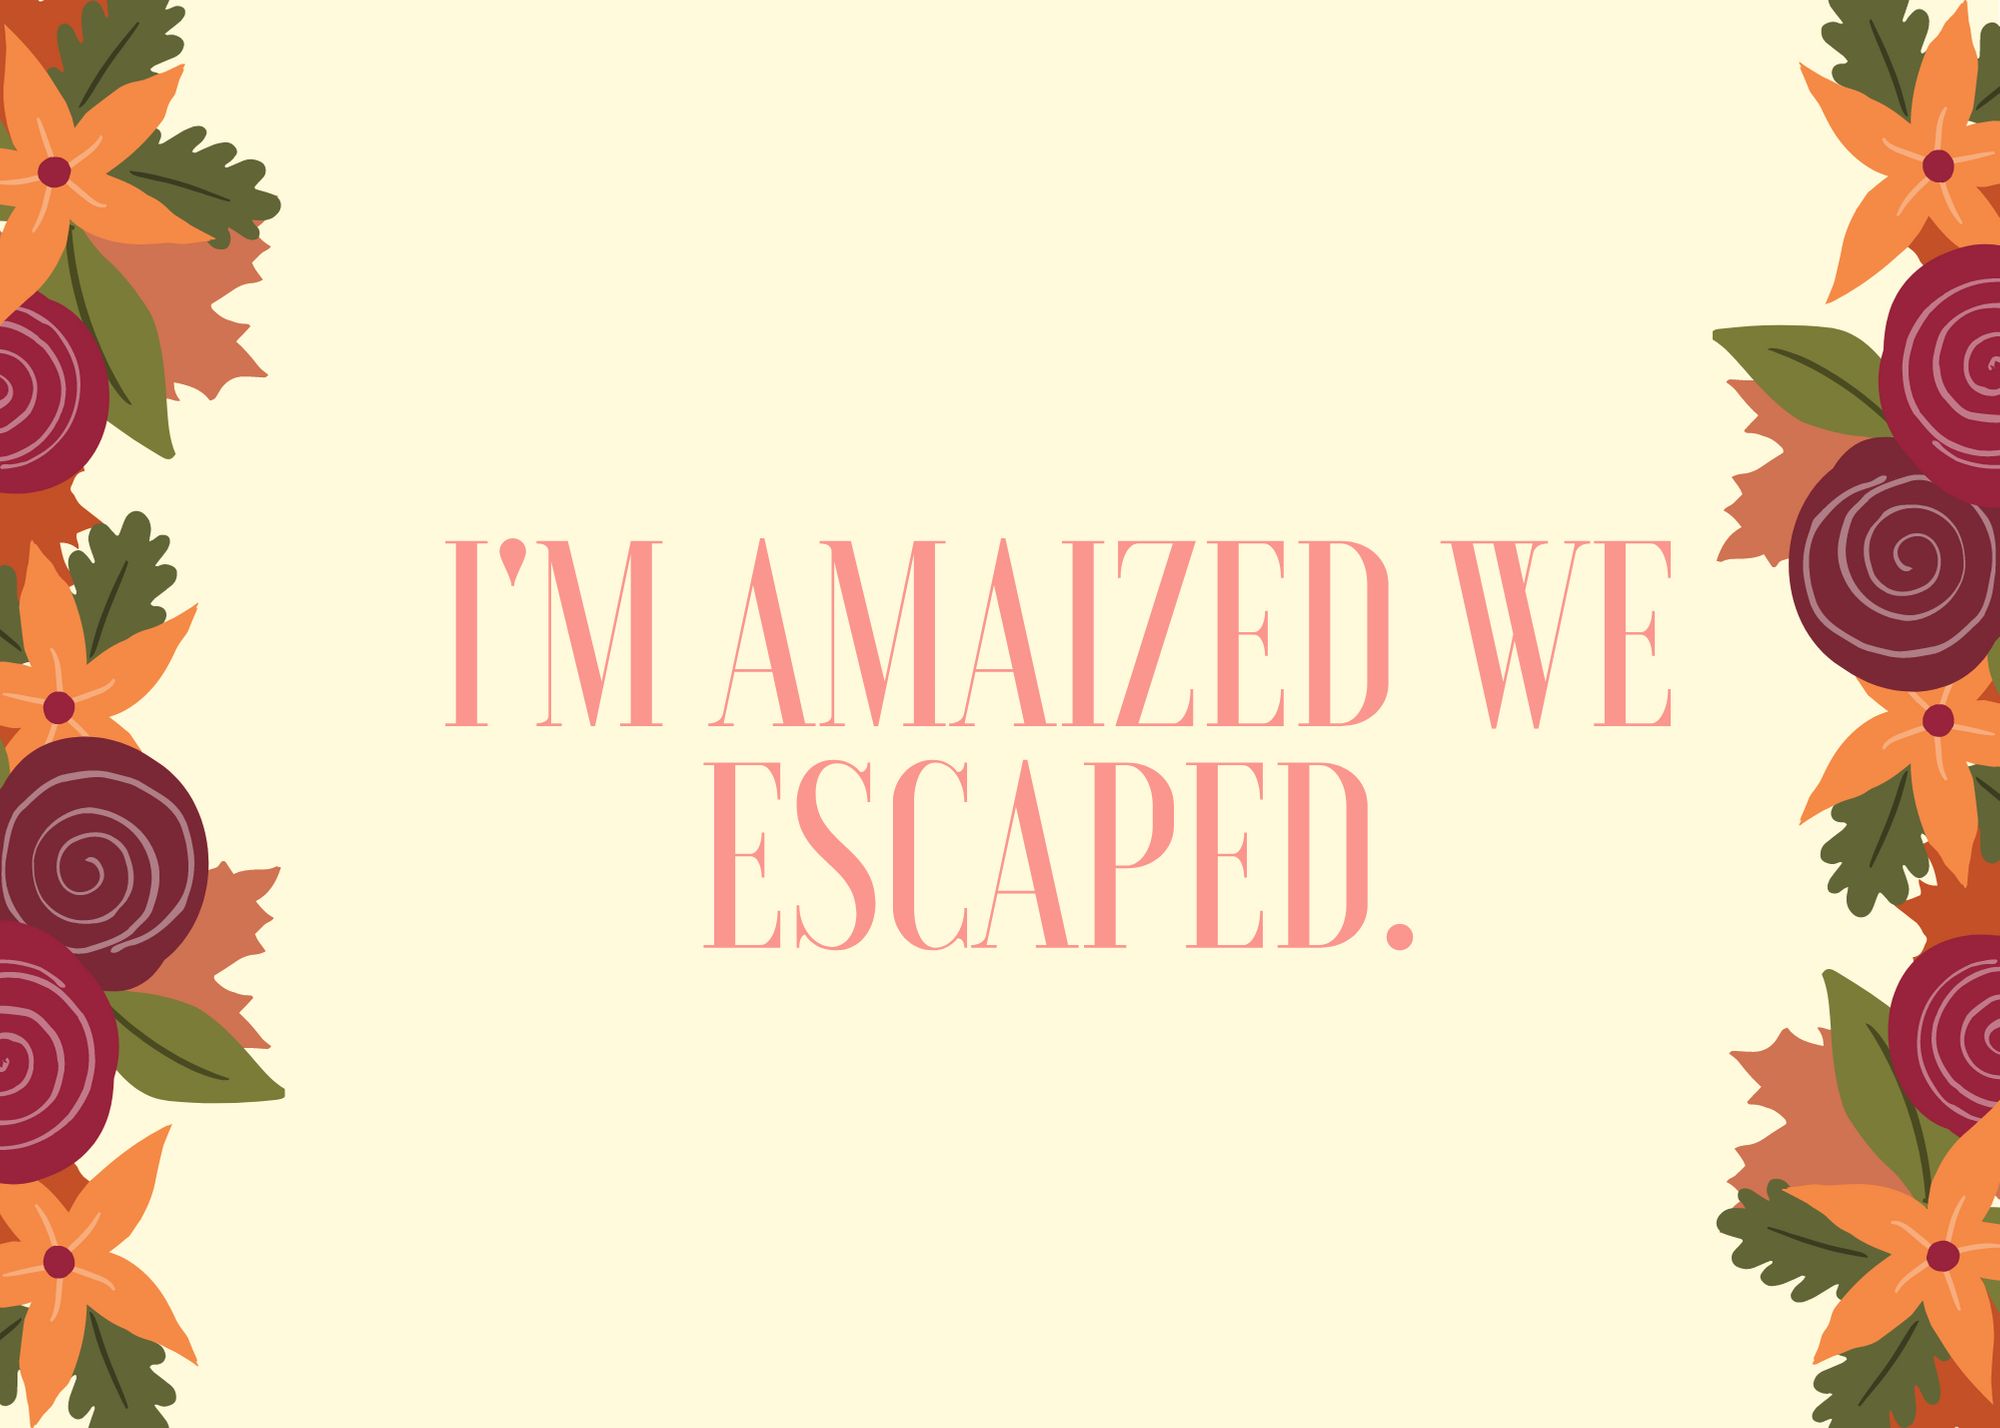 Funny Fall Instagram Caption About Escaping